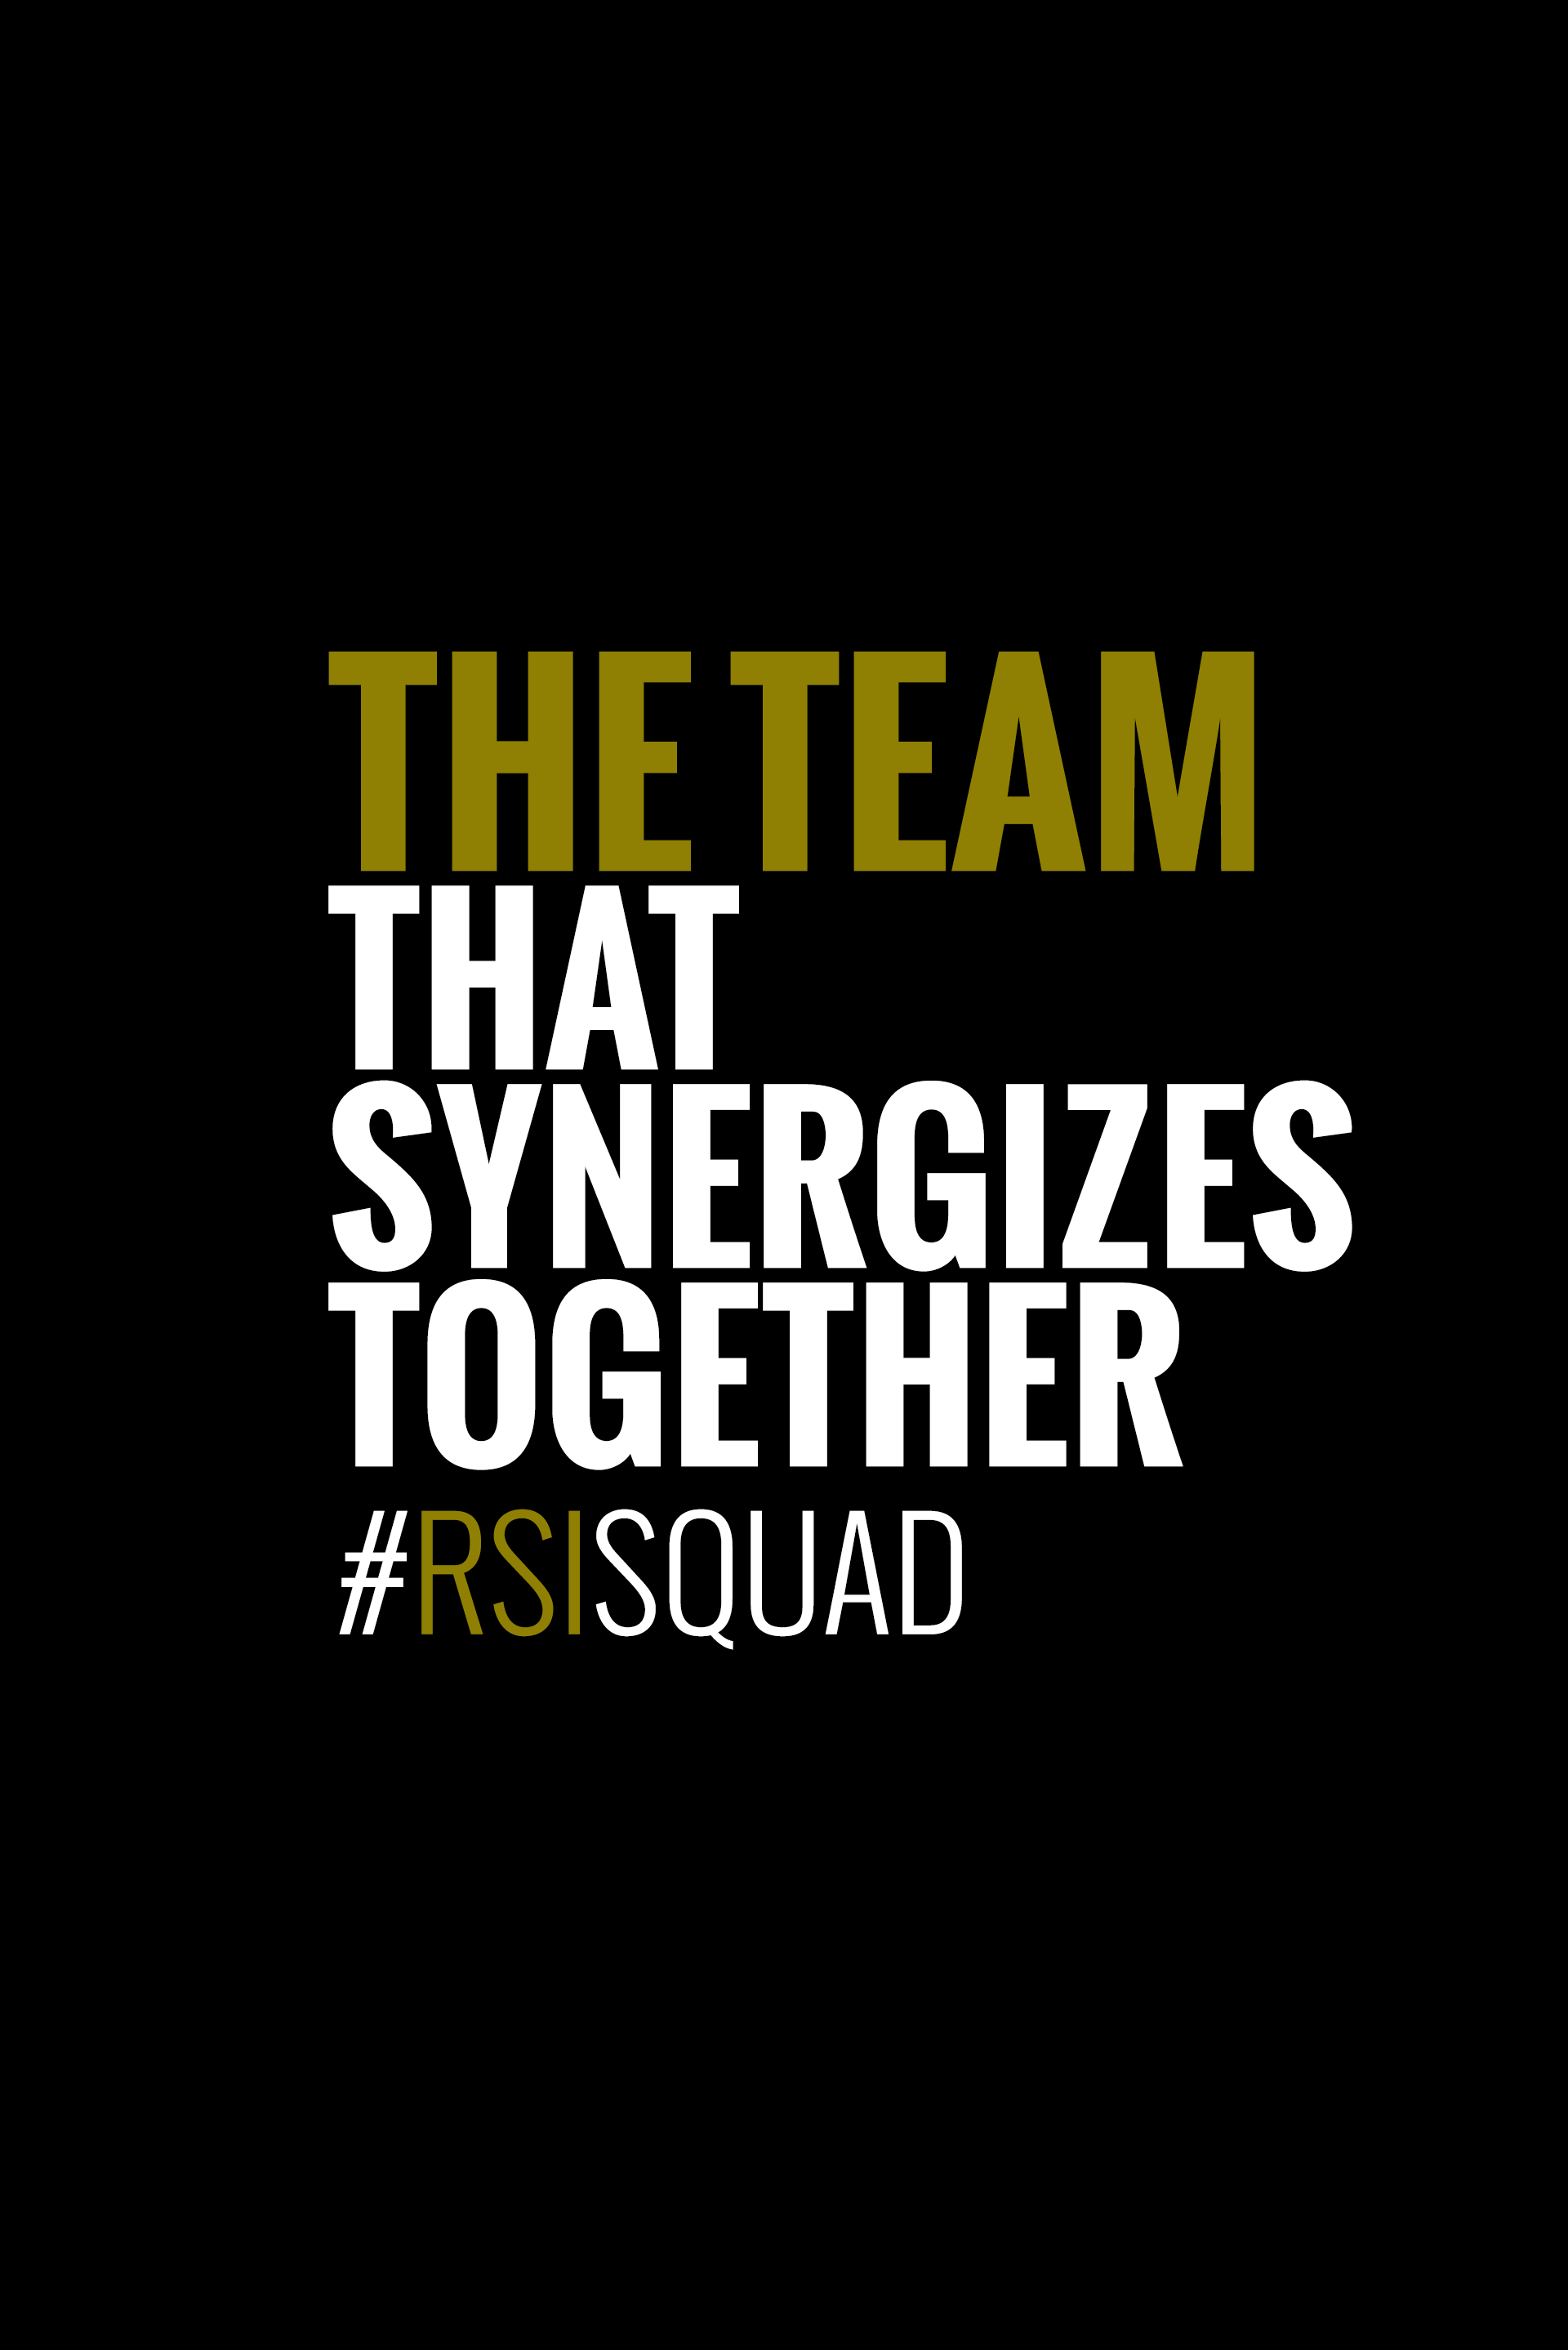 The Team That Synergizes Together